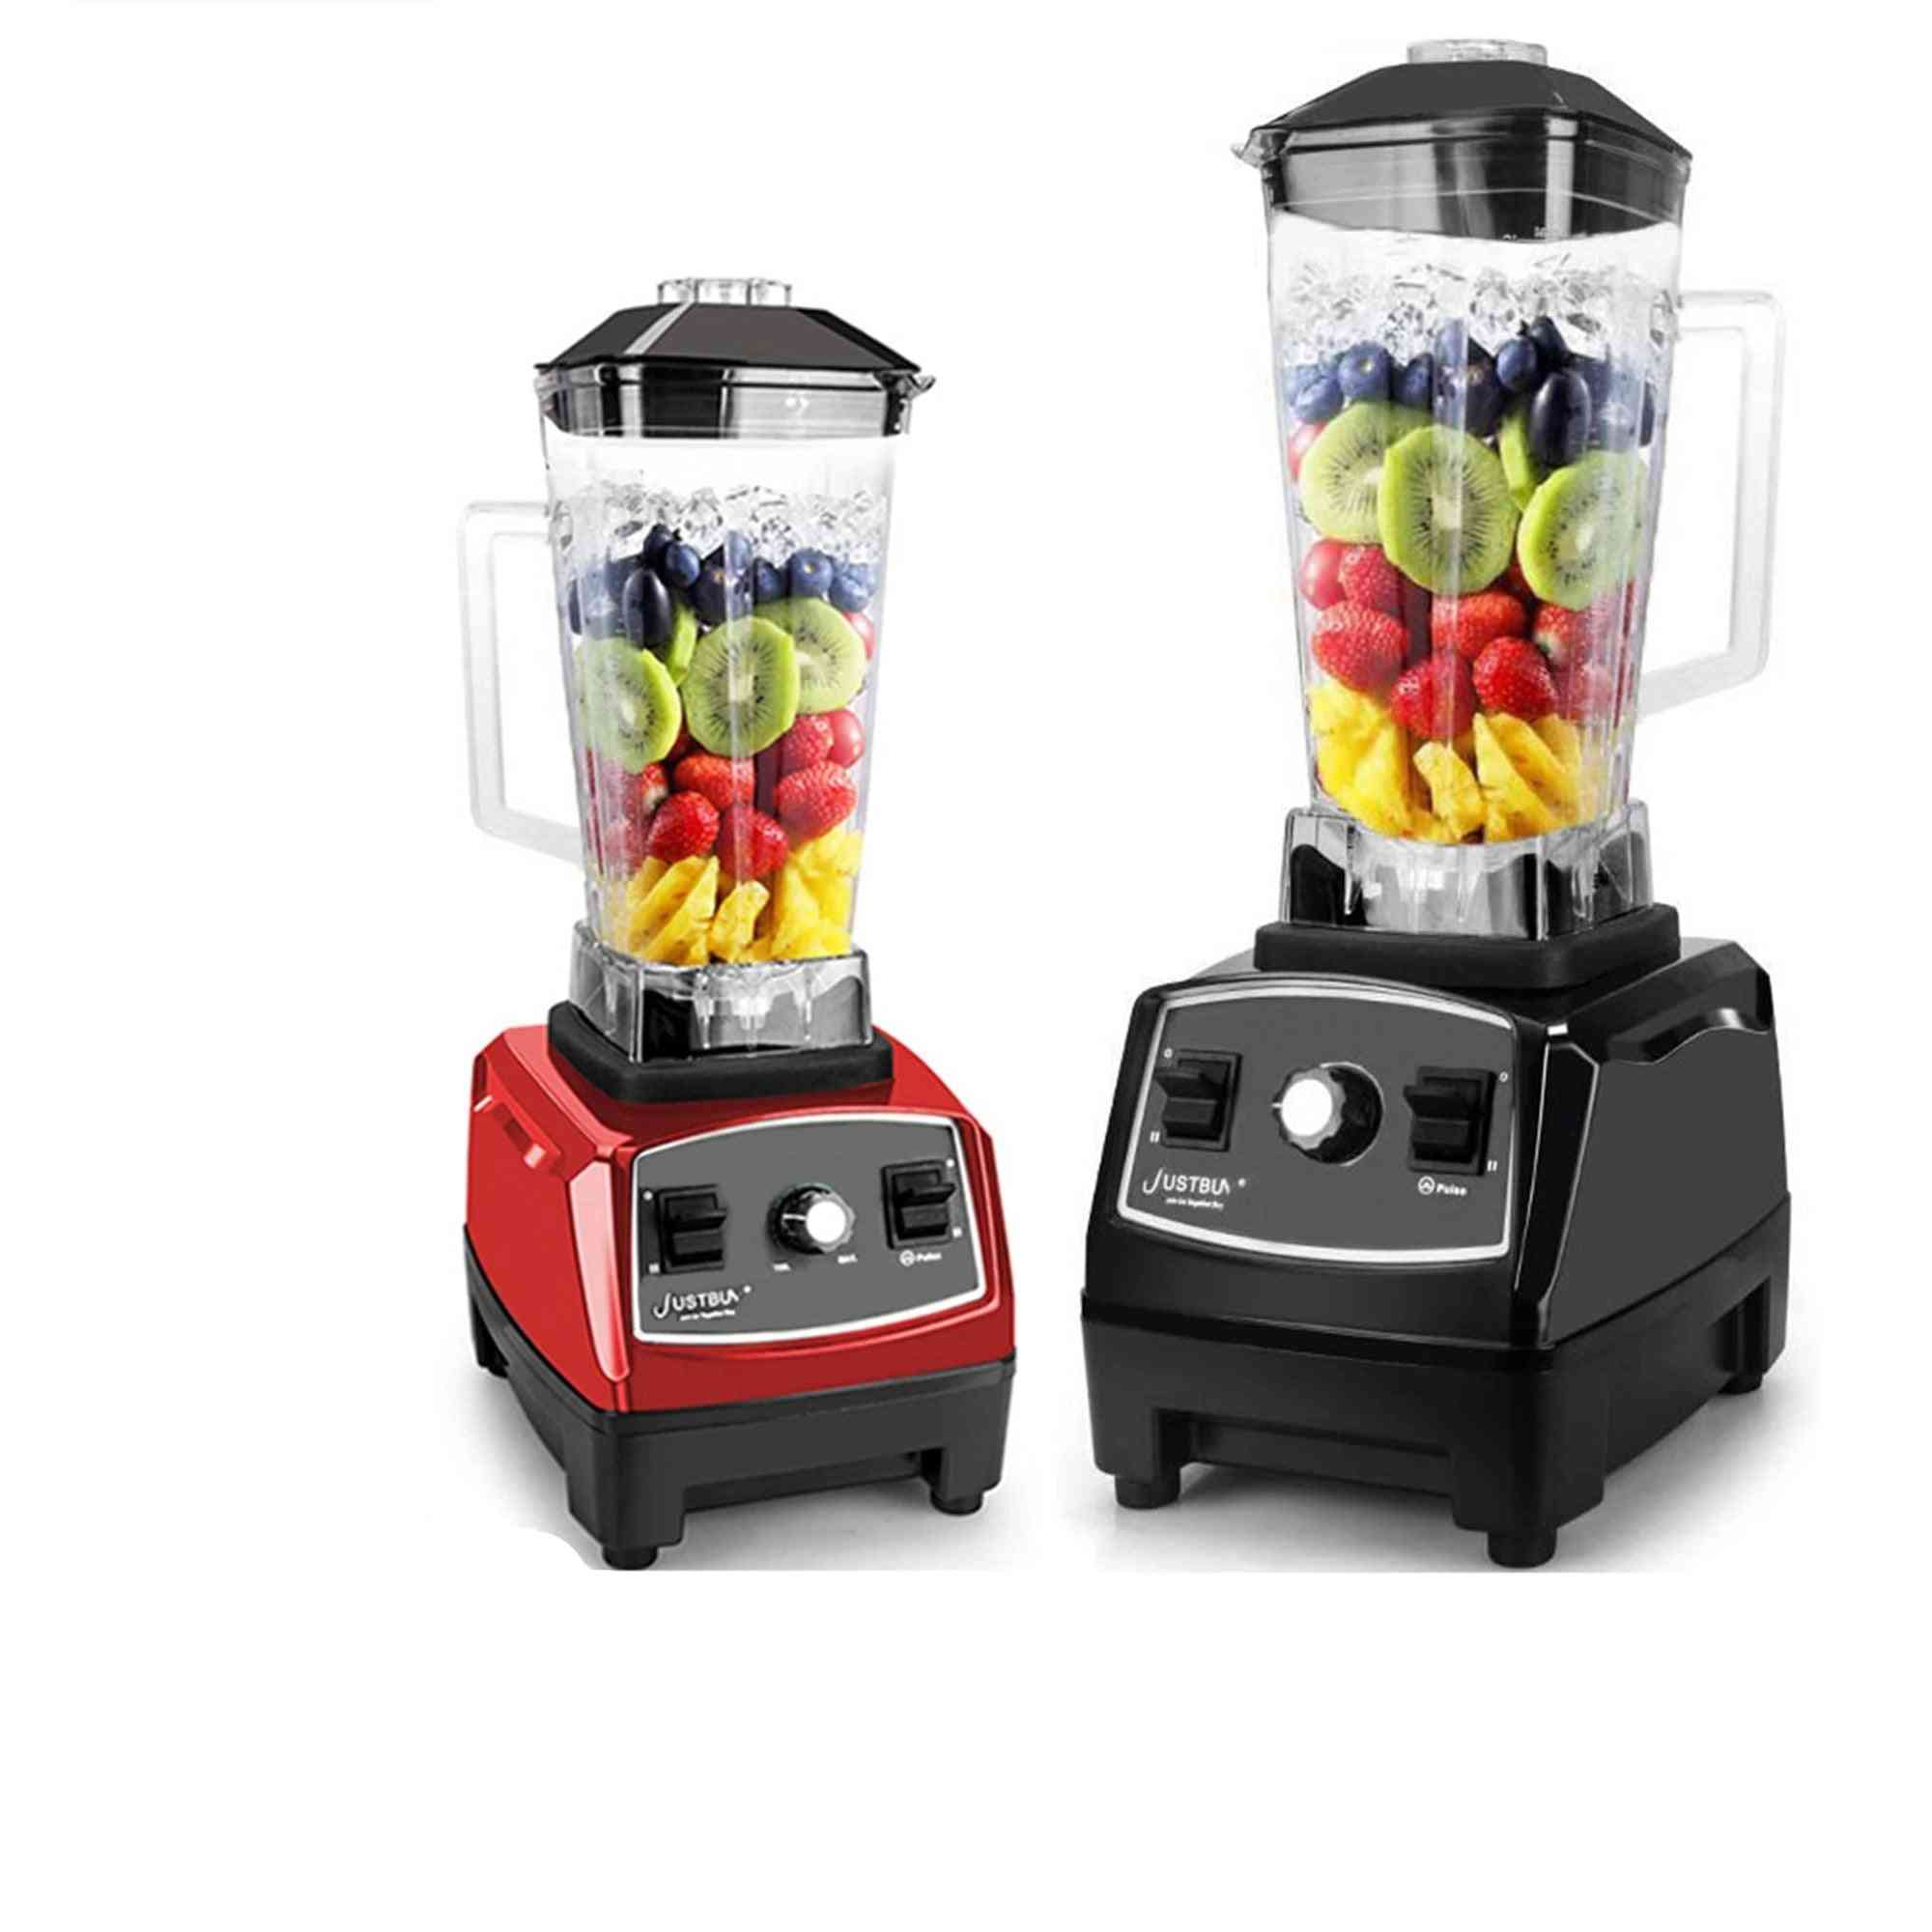 2200w- Commercial Blender Mixer For Food Processor, Blade Juicer, Ice Smoothie Machine